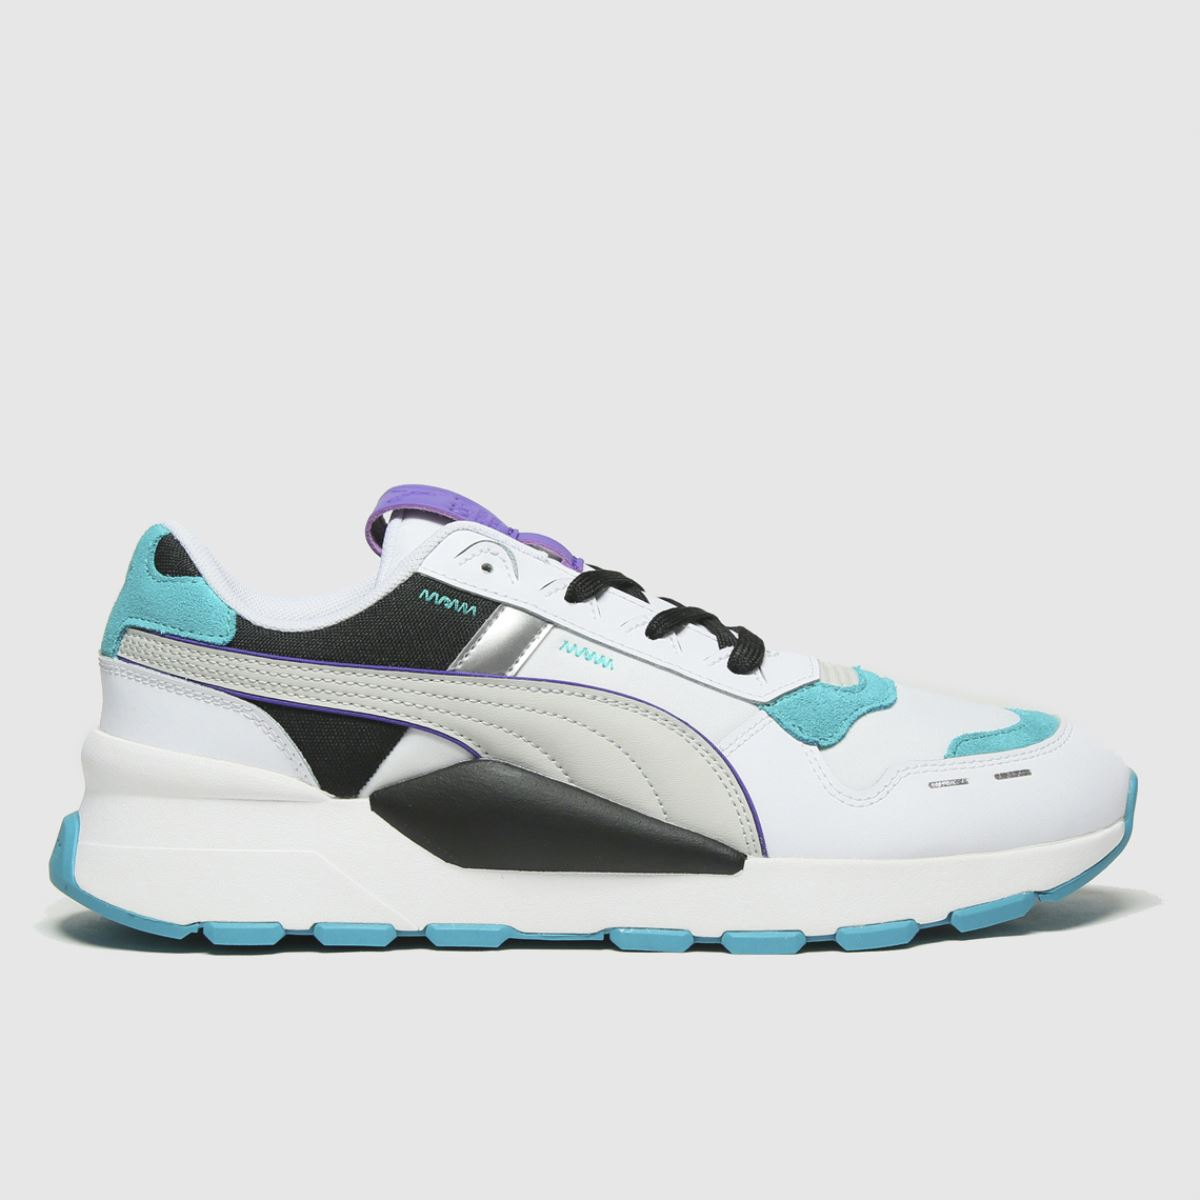 Puma White & Blue Rs 2.0 Futura Trainers